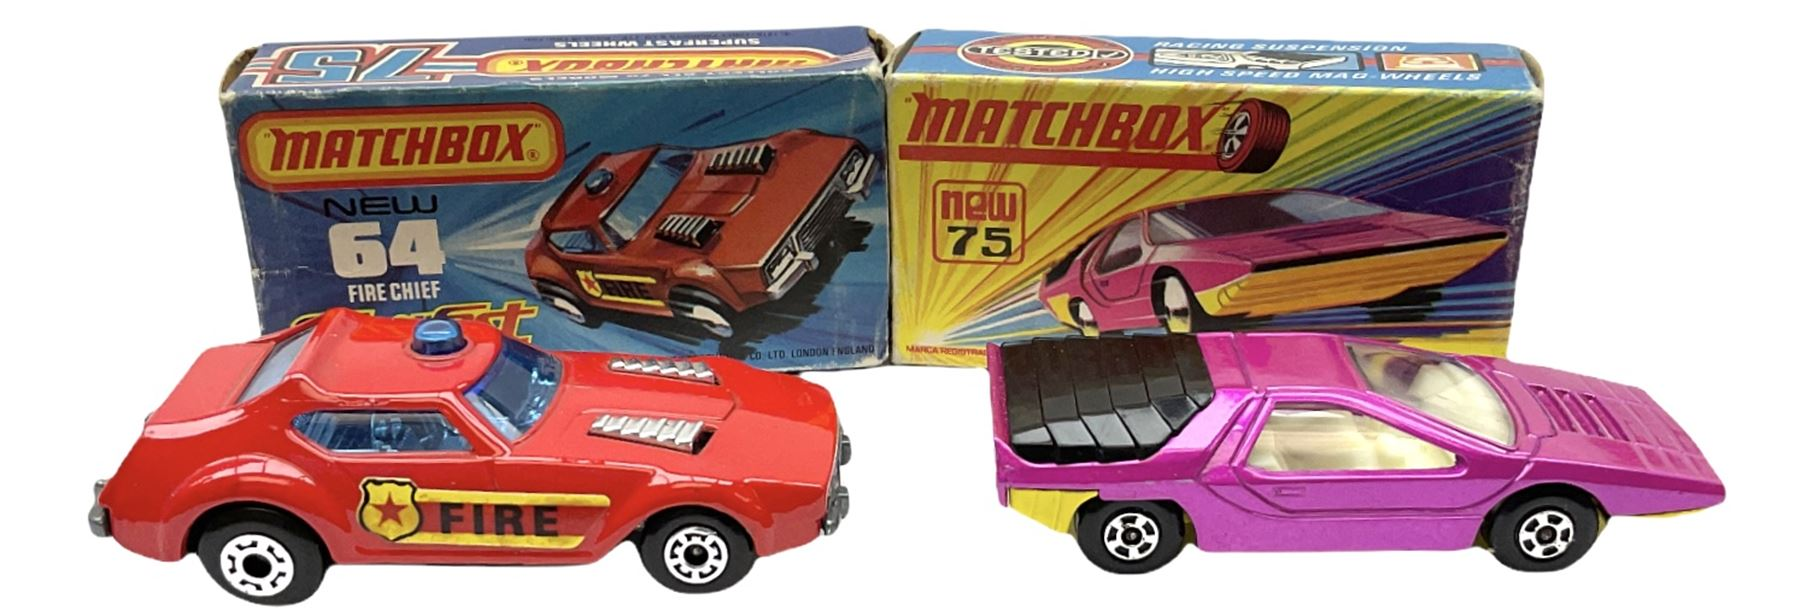 Matchbox/Superfast - nine '1-75' series models comprising 64d Fire Chief car - Image 4 of 8